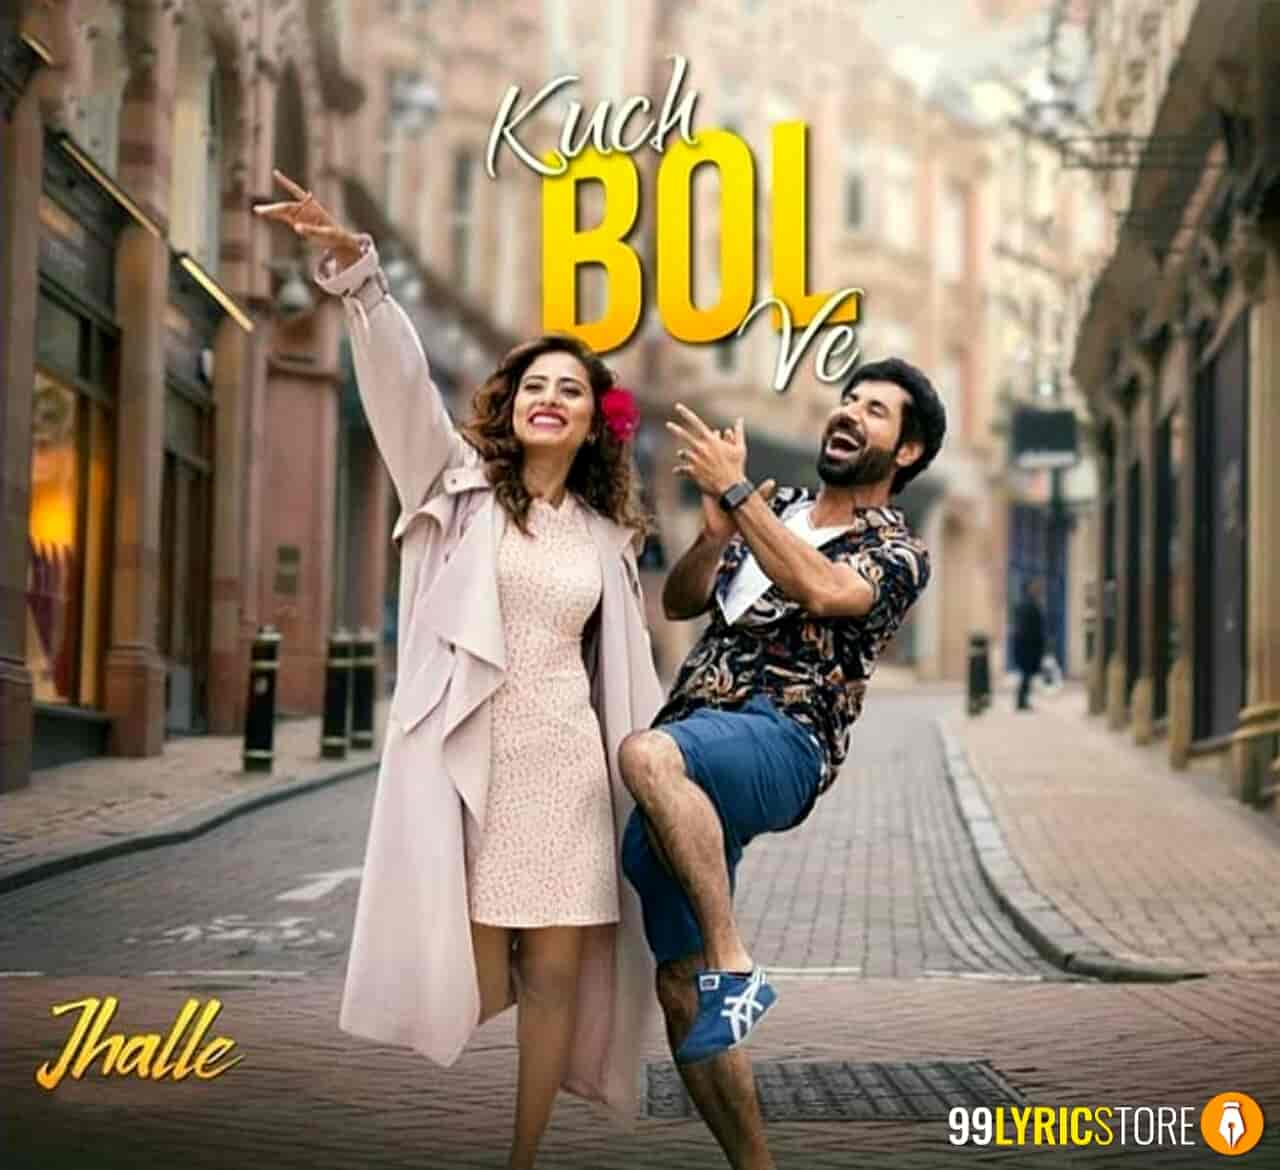 Kuch Bol Ve Jhalle Song Images